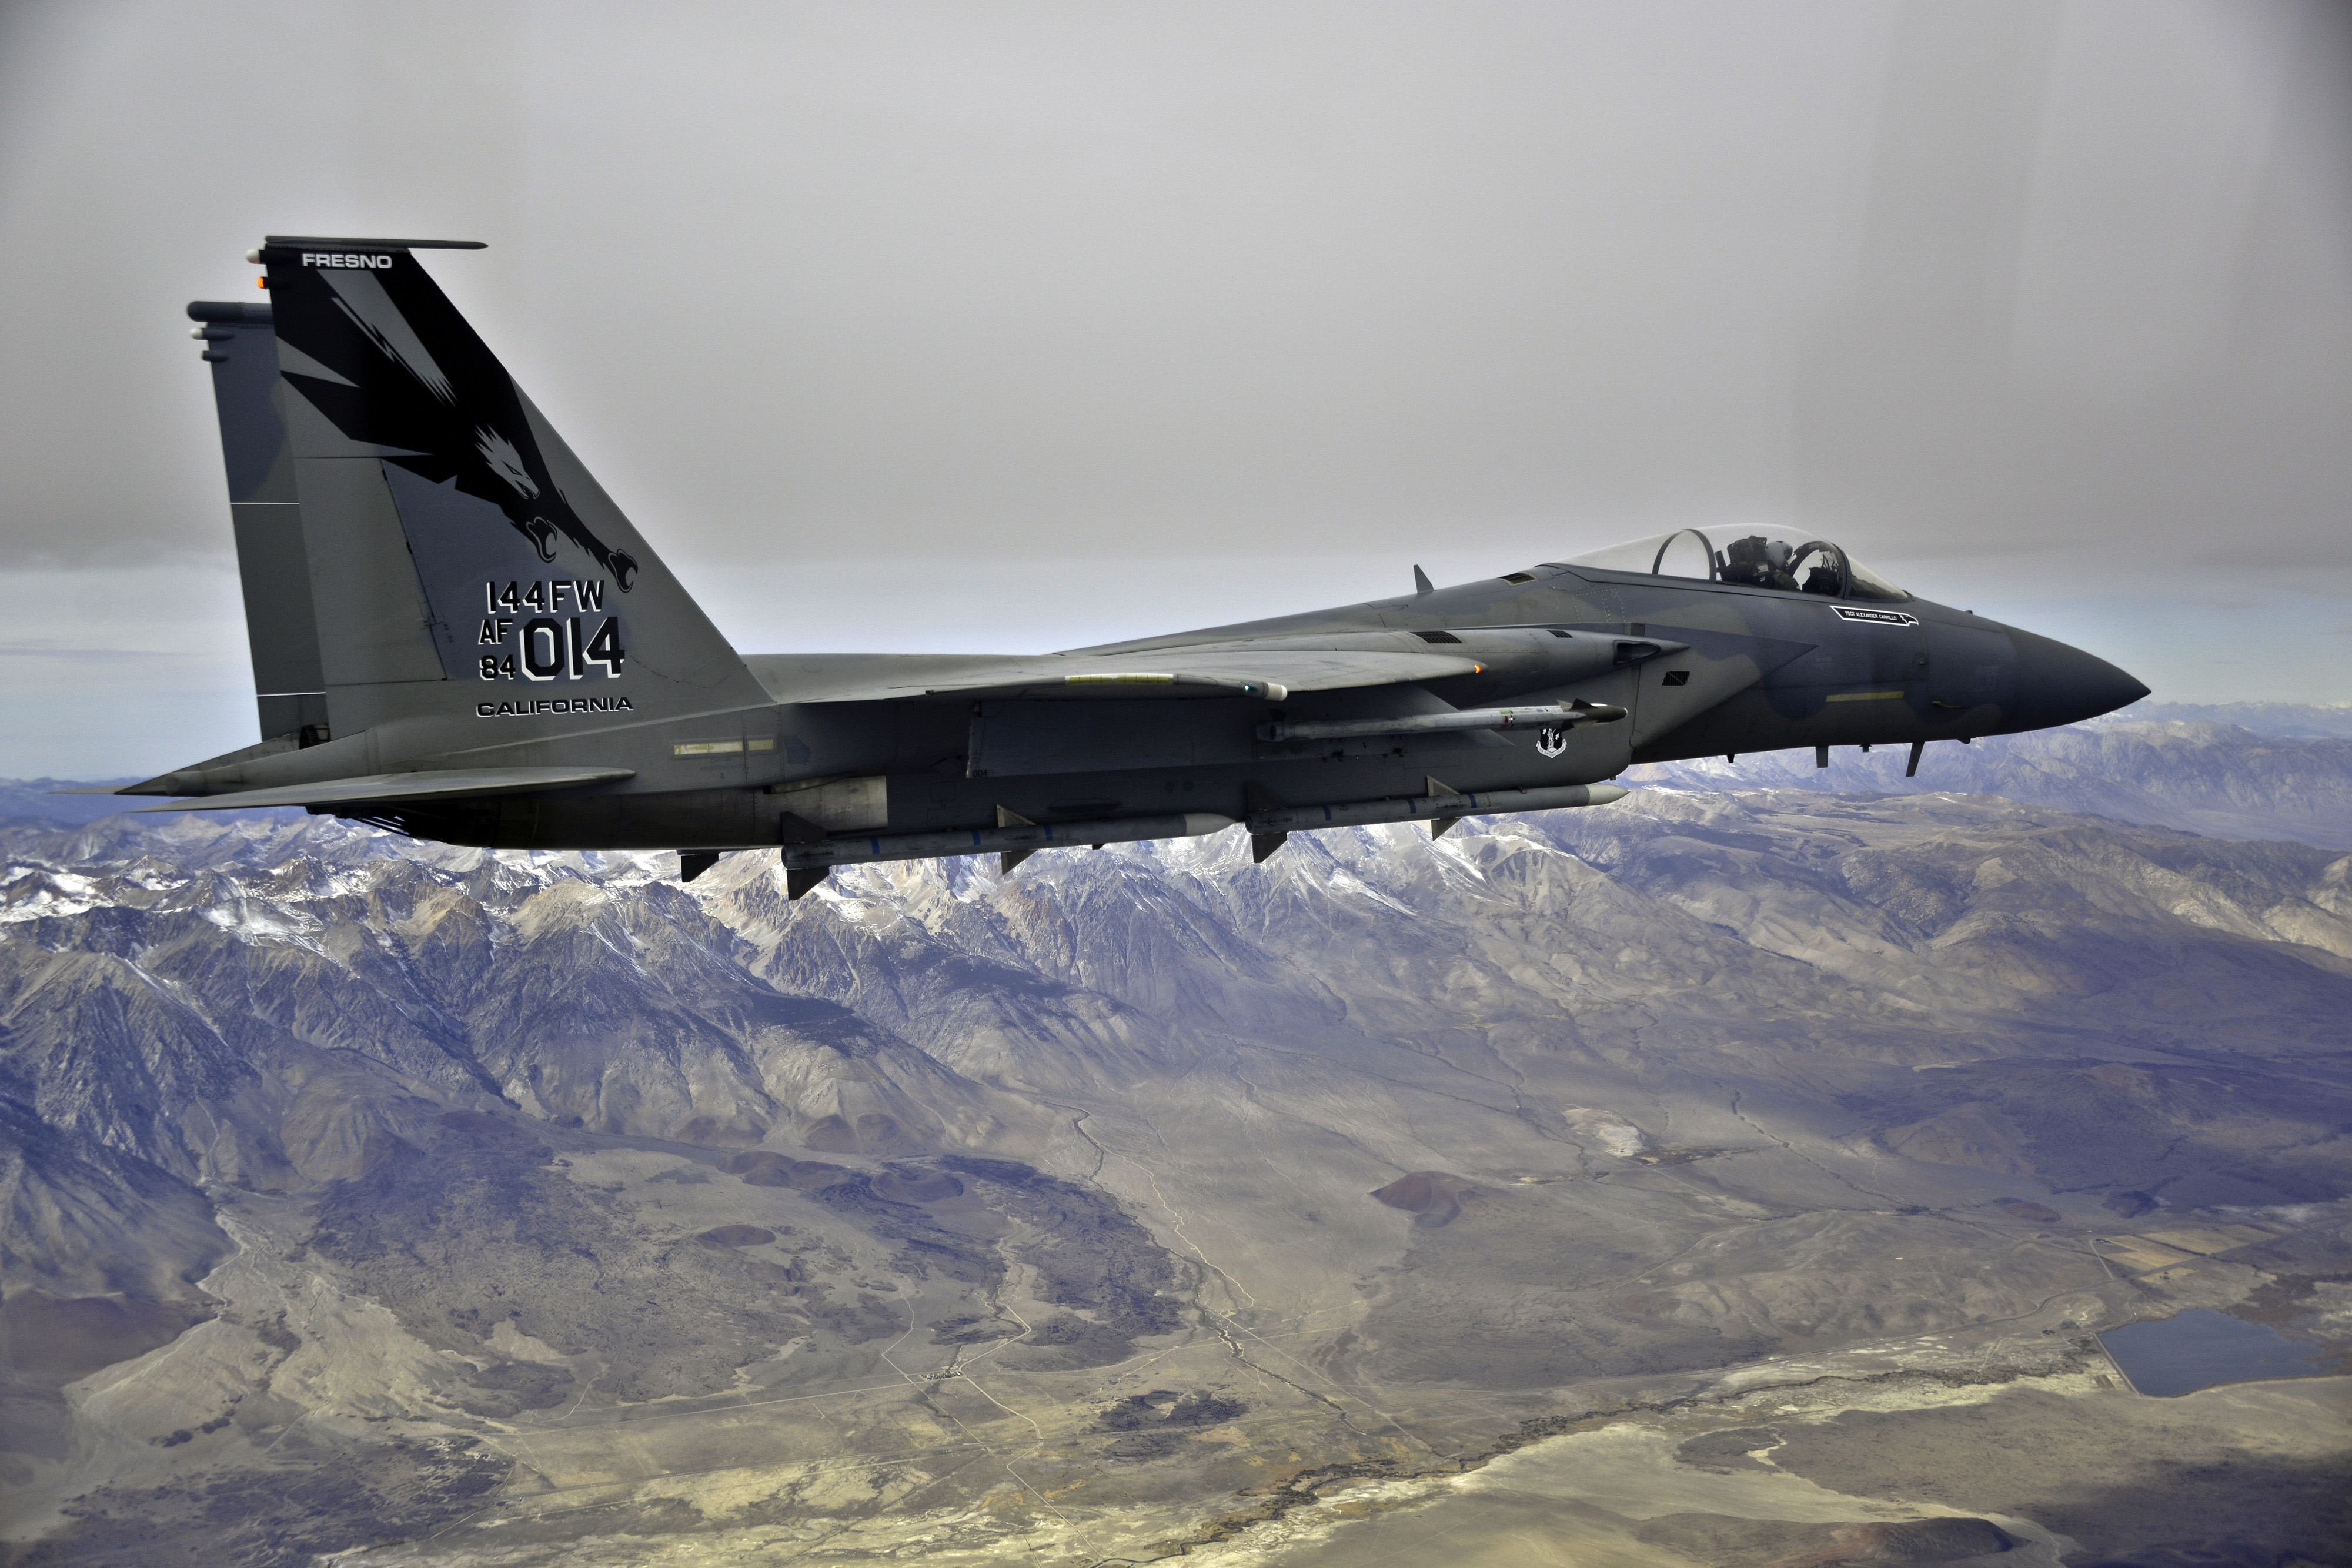 144th FW F 15 Eagle